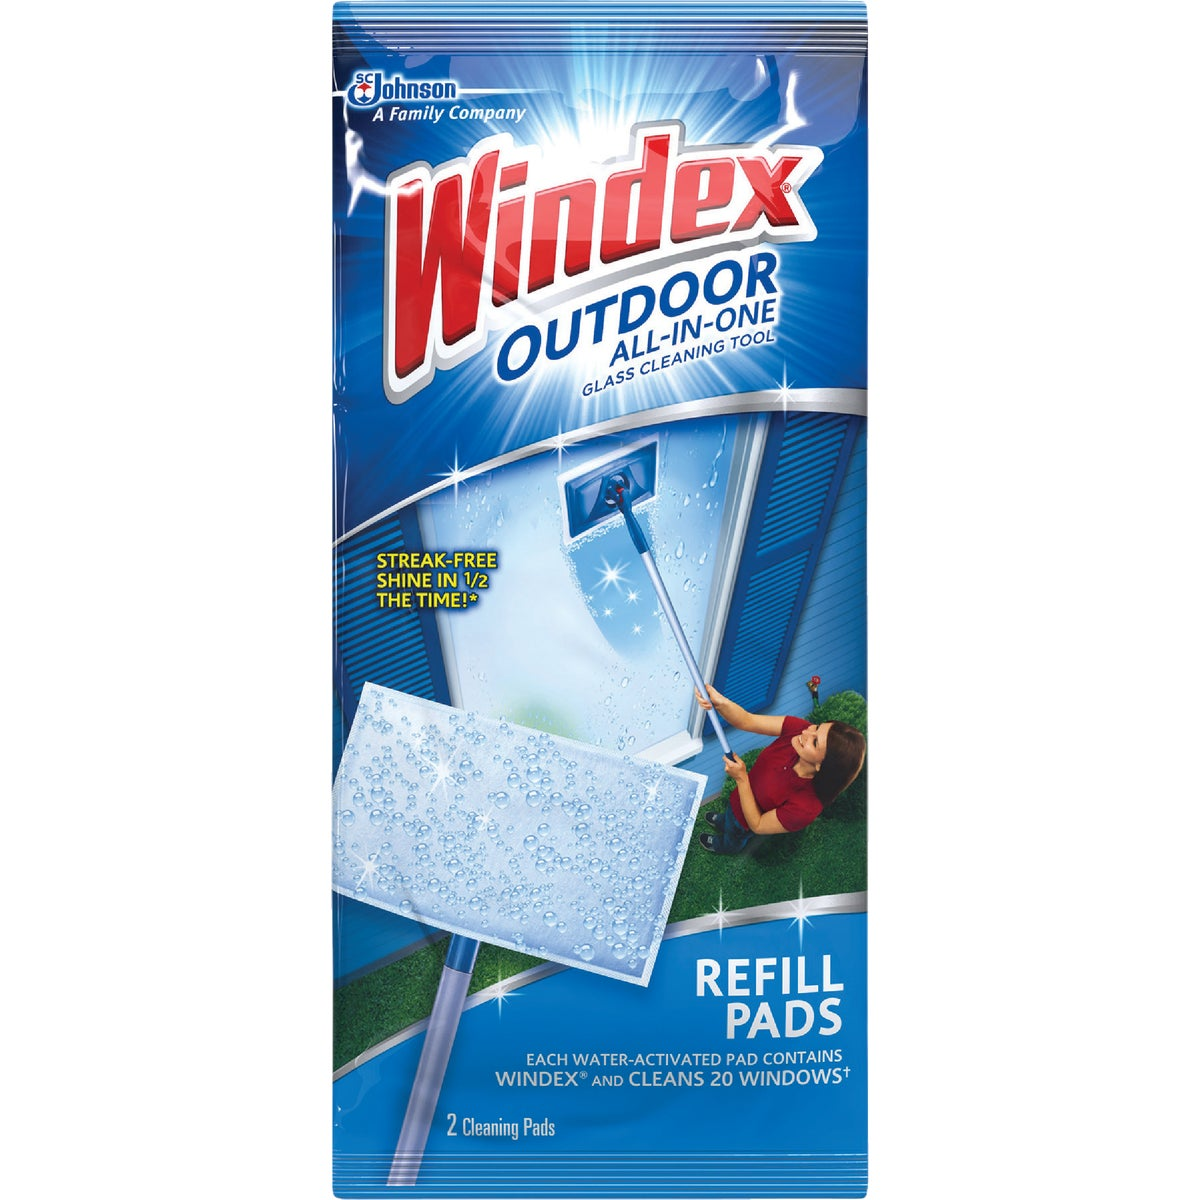 WINDEX ALL-IN-ONE REFILL - 70118 by Sc Johnson